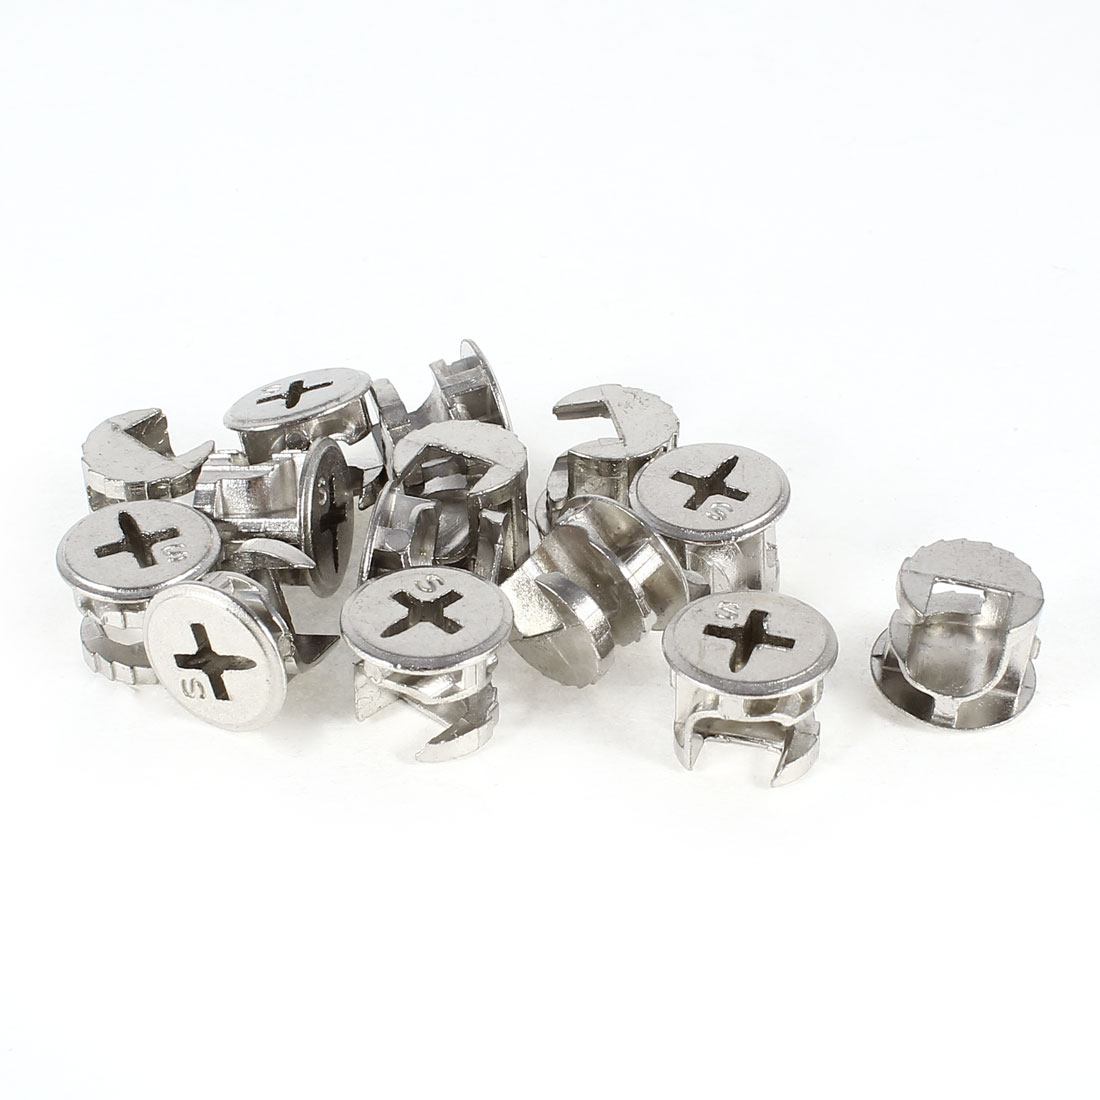 15 Pcs Silver Tone 15mm Diameter Furniture Cam Lock Screw Fittings